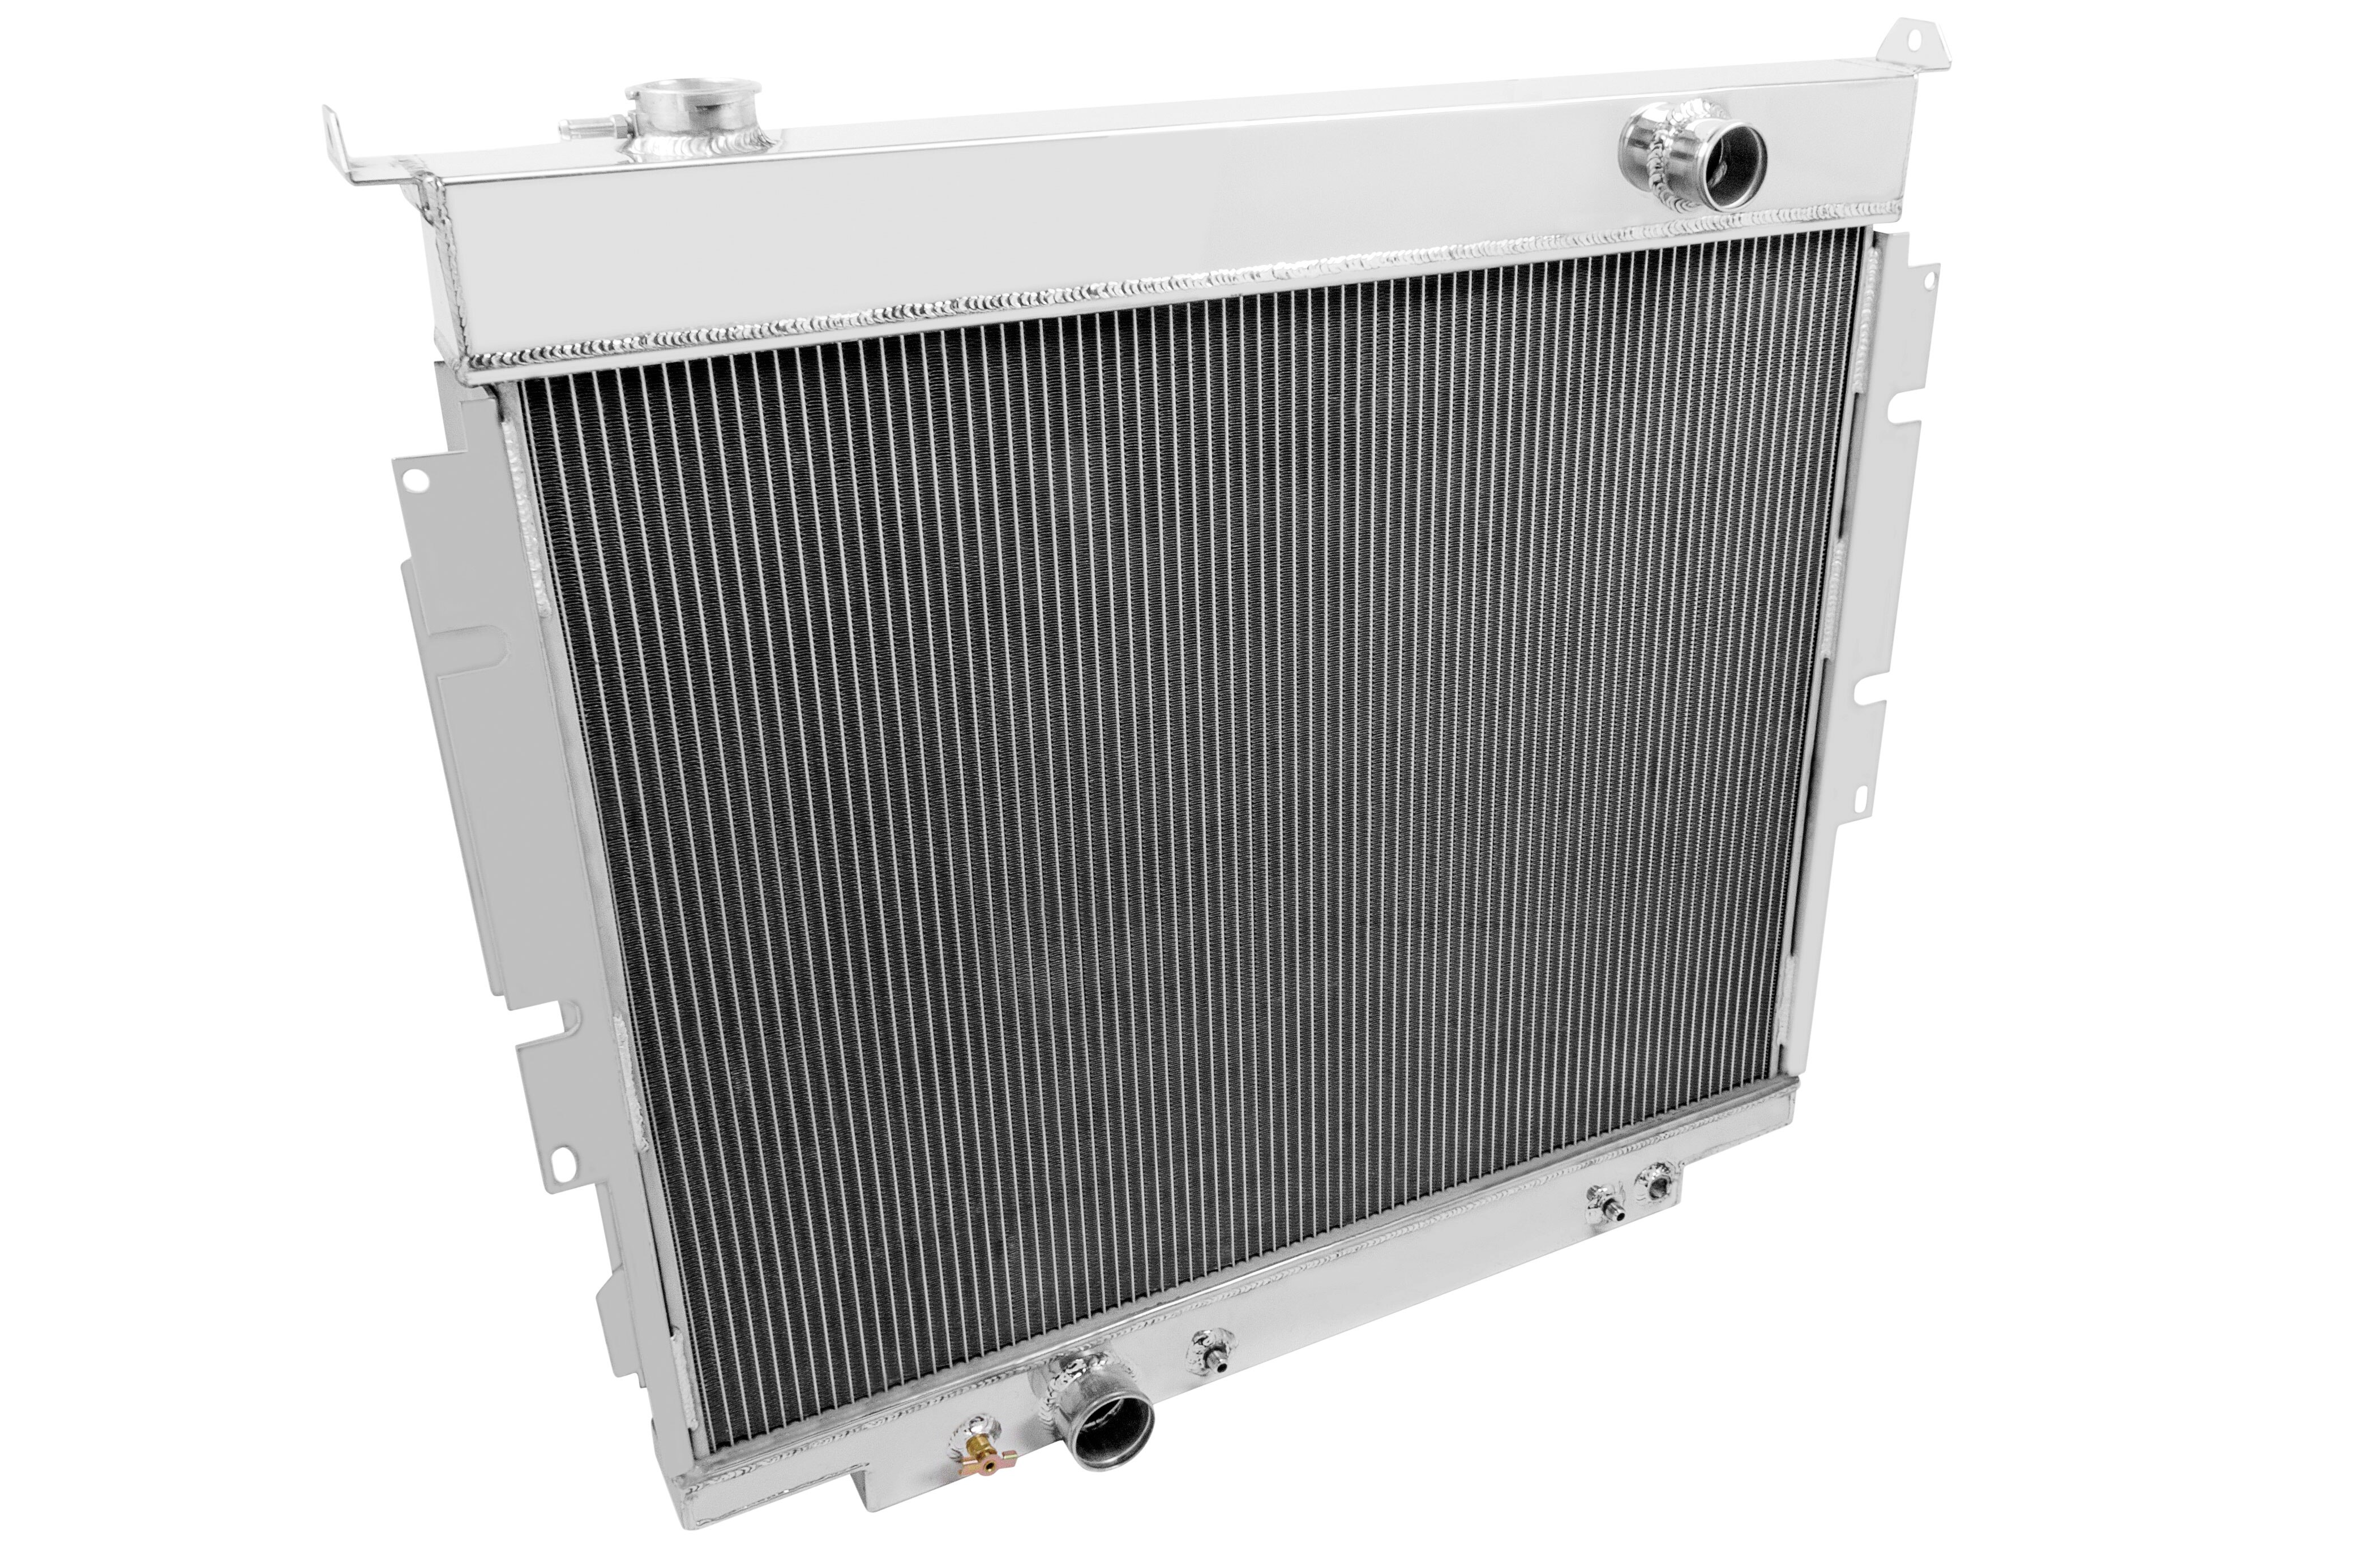 Champion's radiators are made from the highest grades of aluminum, are 100 percent TIG-welded (no epoxy) with high-density furnace-brazed cores and louvered fin technology. Available in two, three, and Monster Series four-row cores, the radiators can cool even the largest engines (over 1,000 hp). We also offer a line of low profile as well as high-performance fans and fan shrouds for extra cooling power and a truly custom look. All Champion radiators are backed by a limited lifetime warranty.